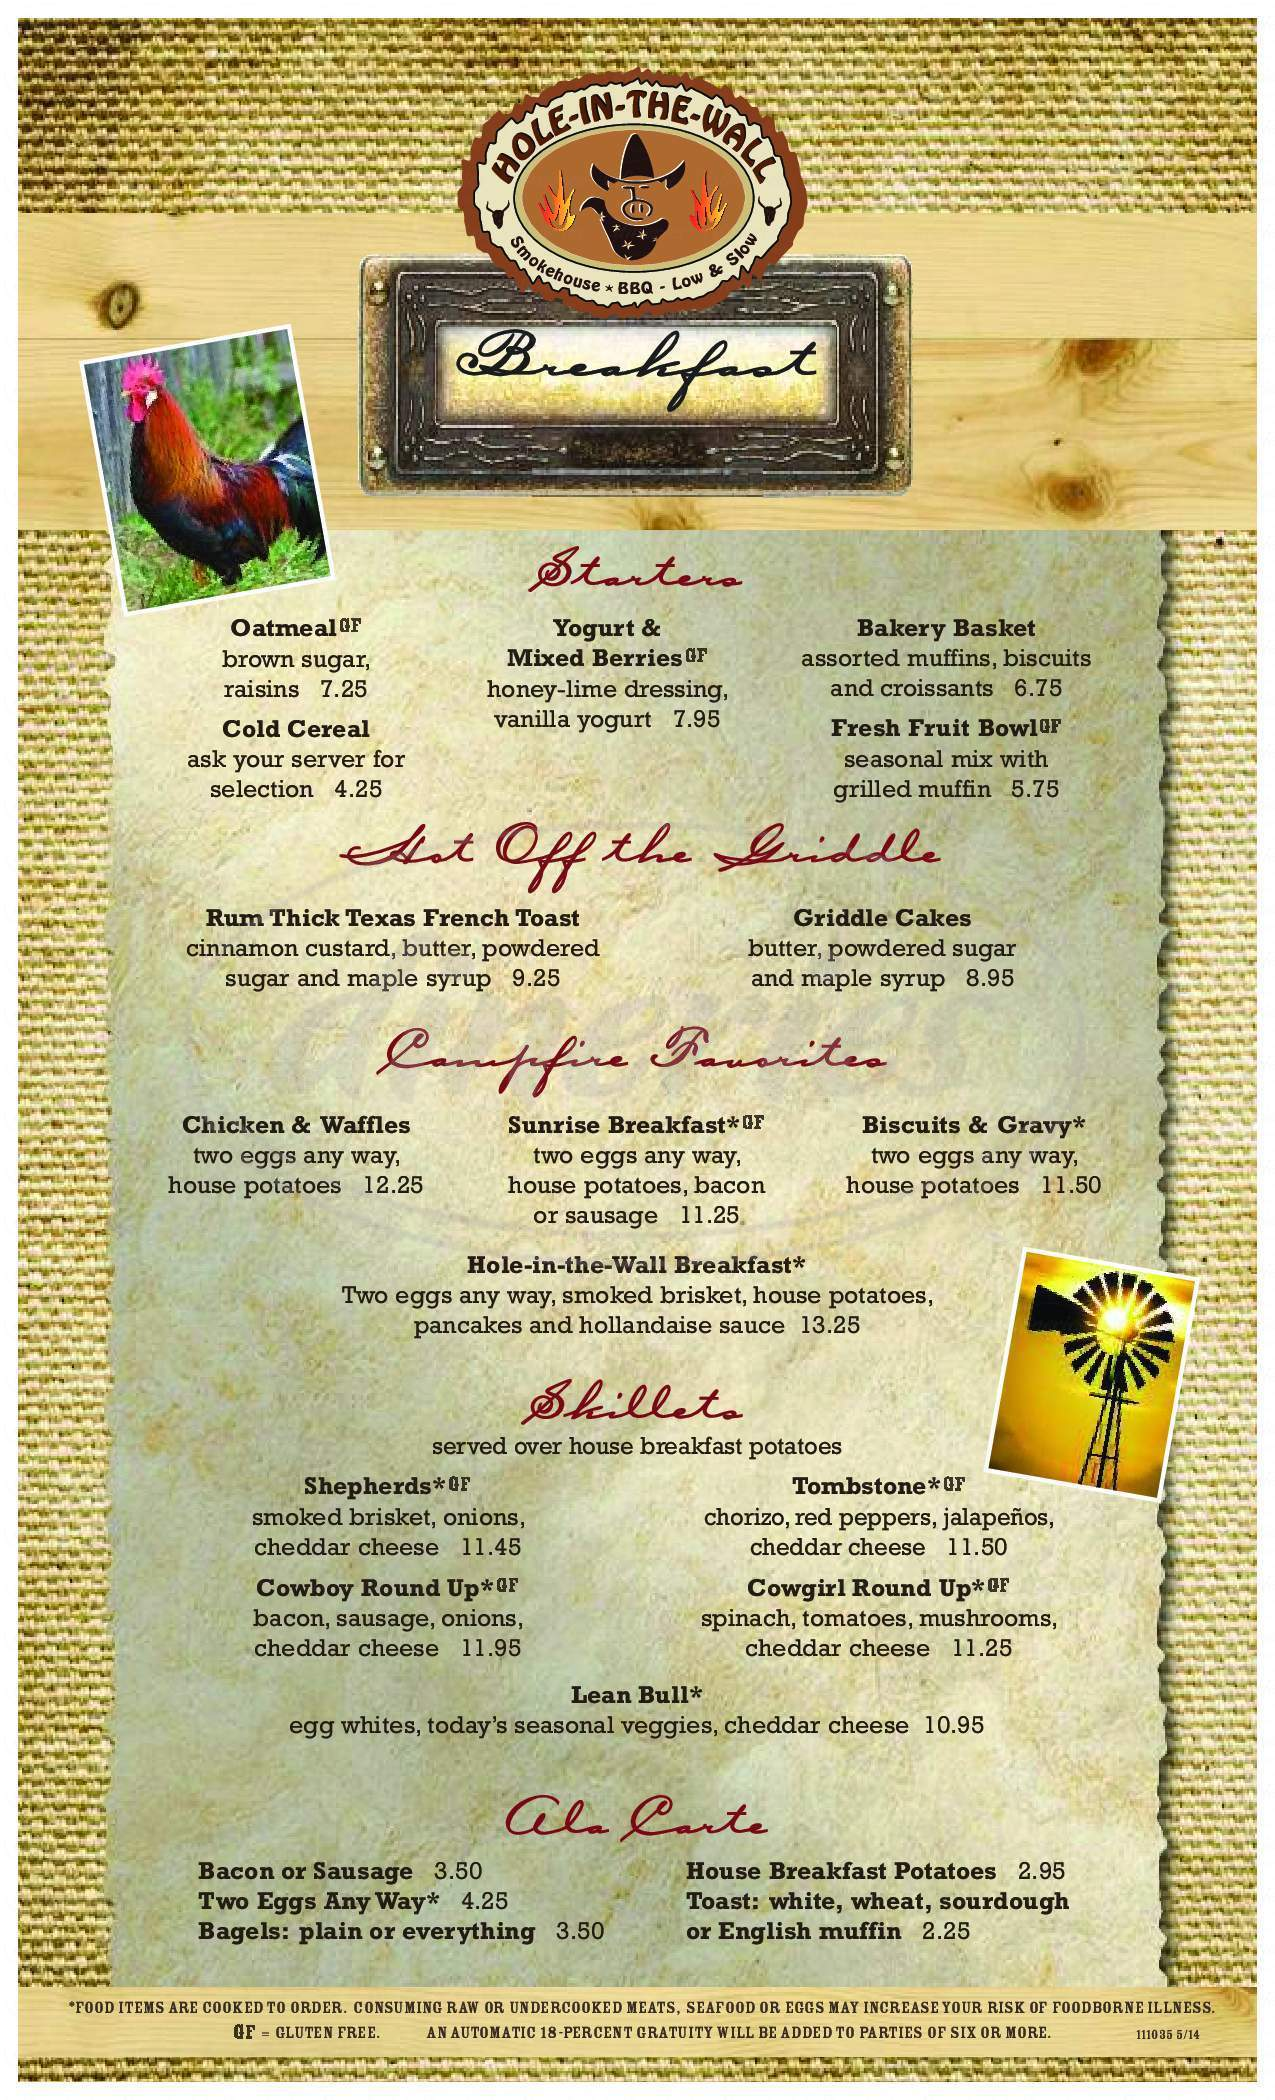 menu for Hole-in-the-Wall